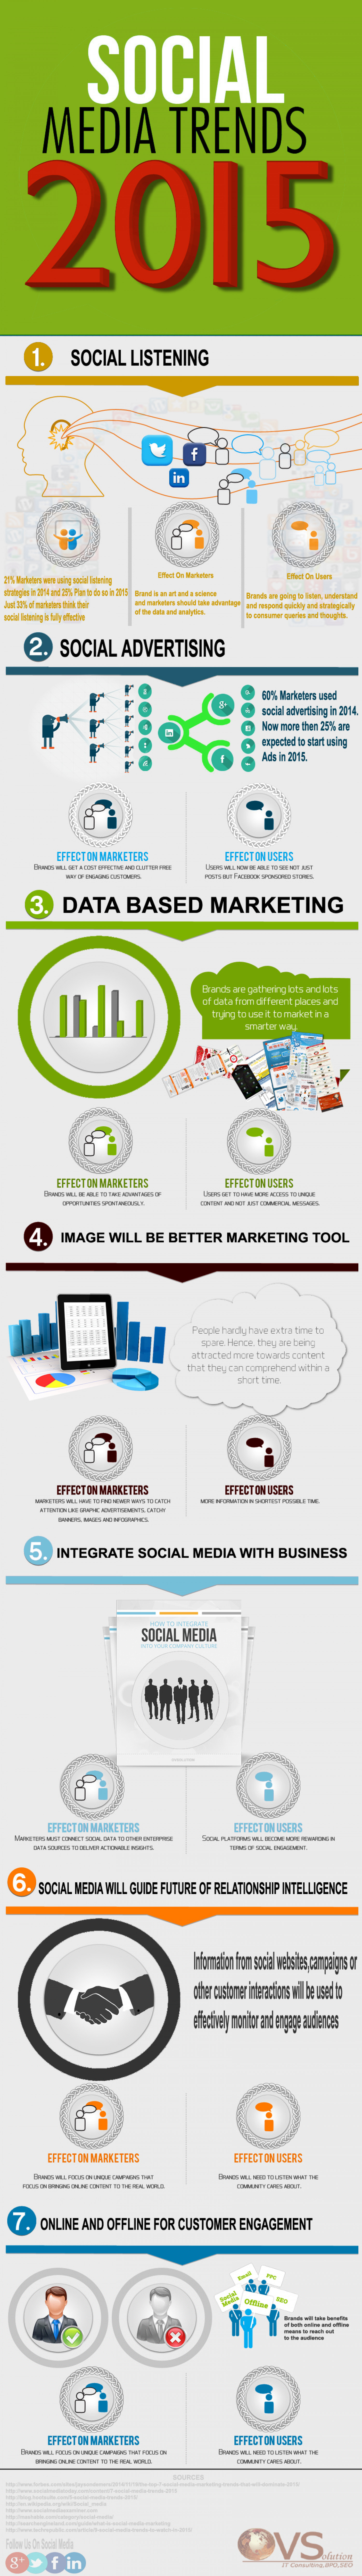 Social Media Trends 2015 Infographic